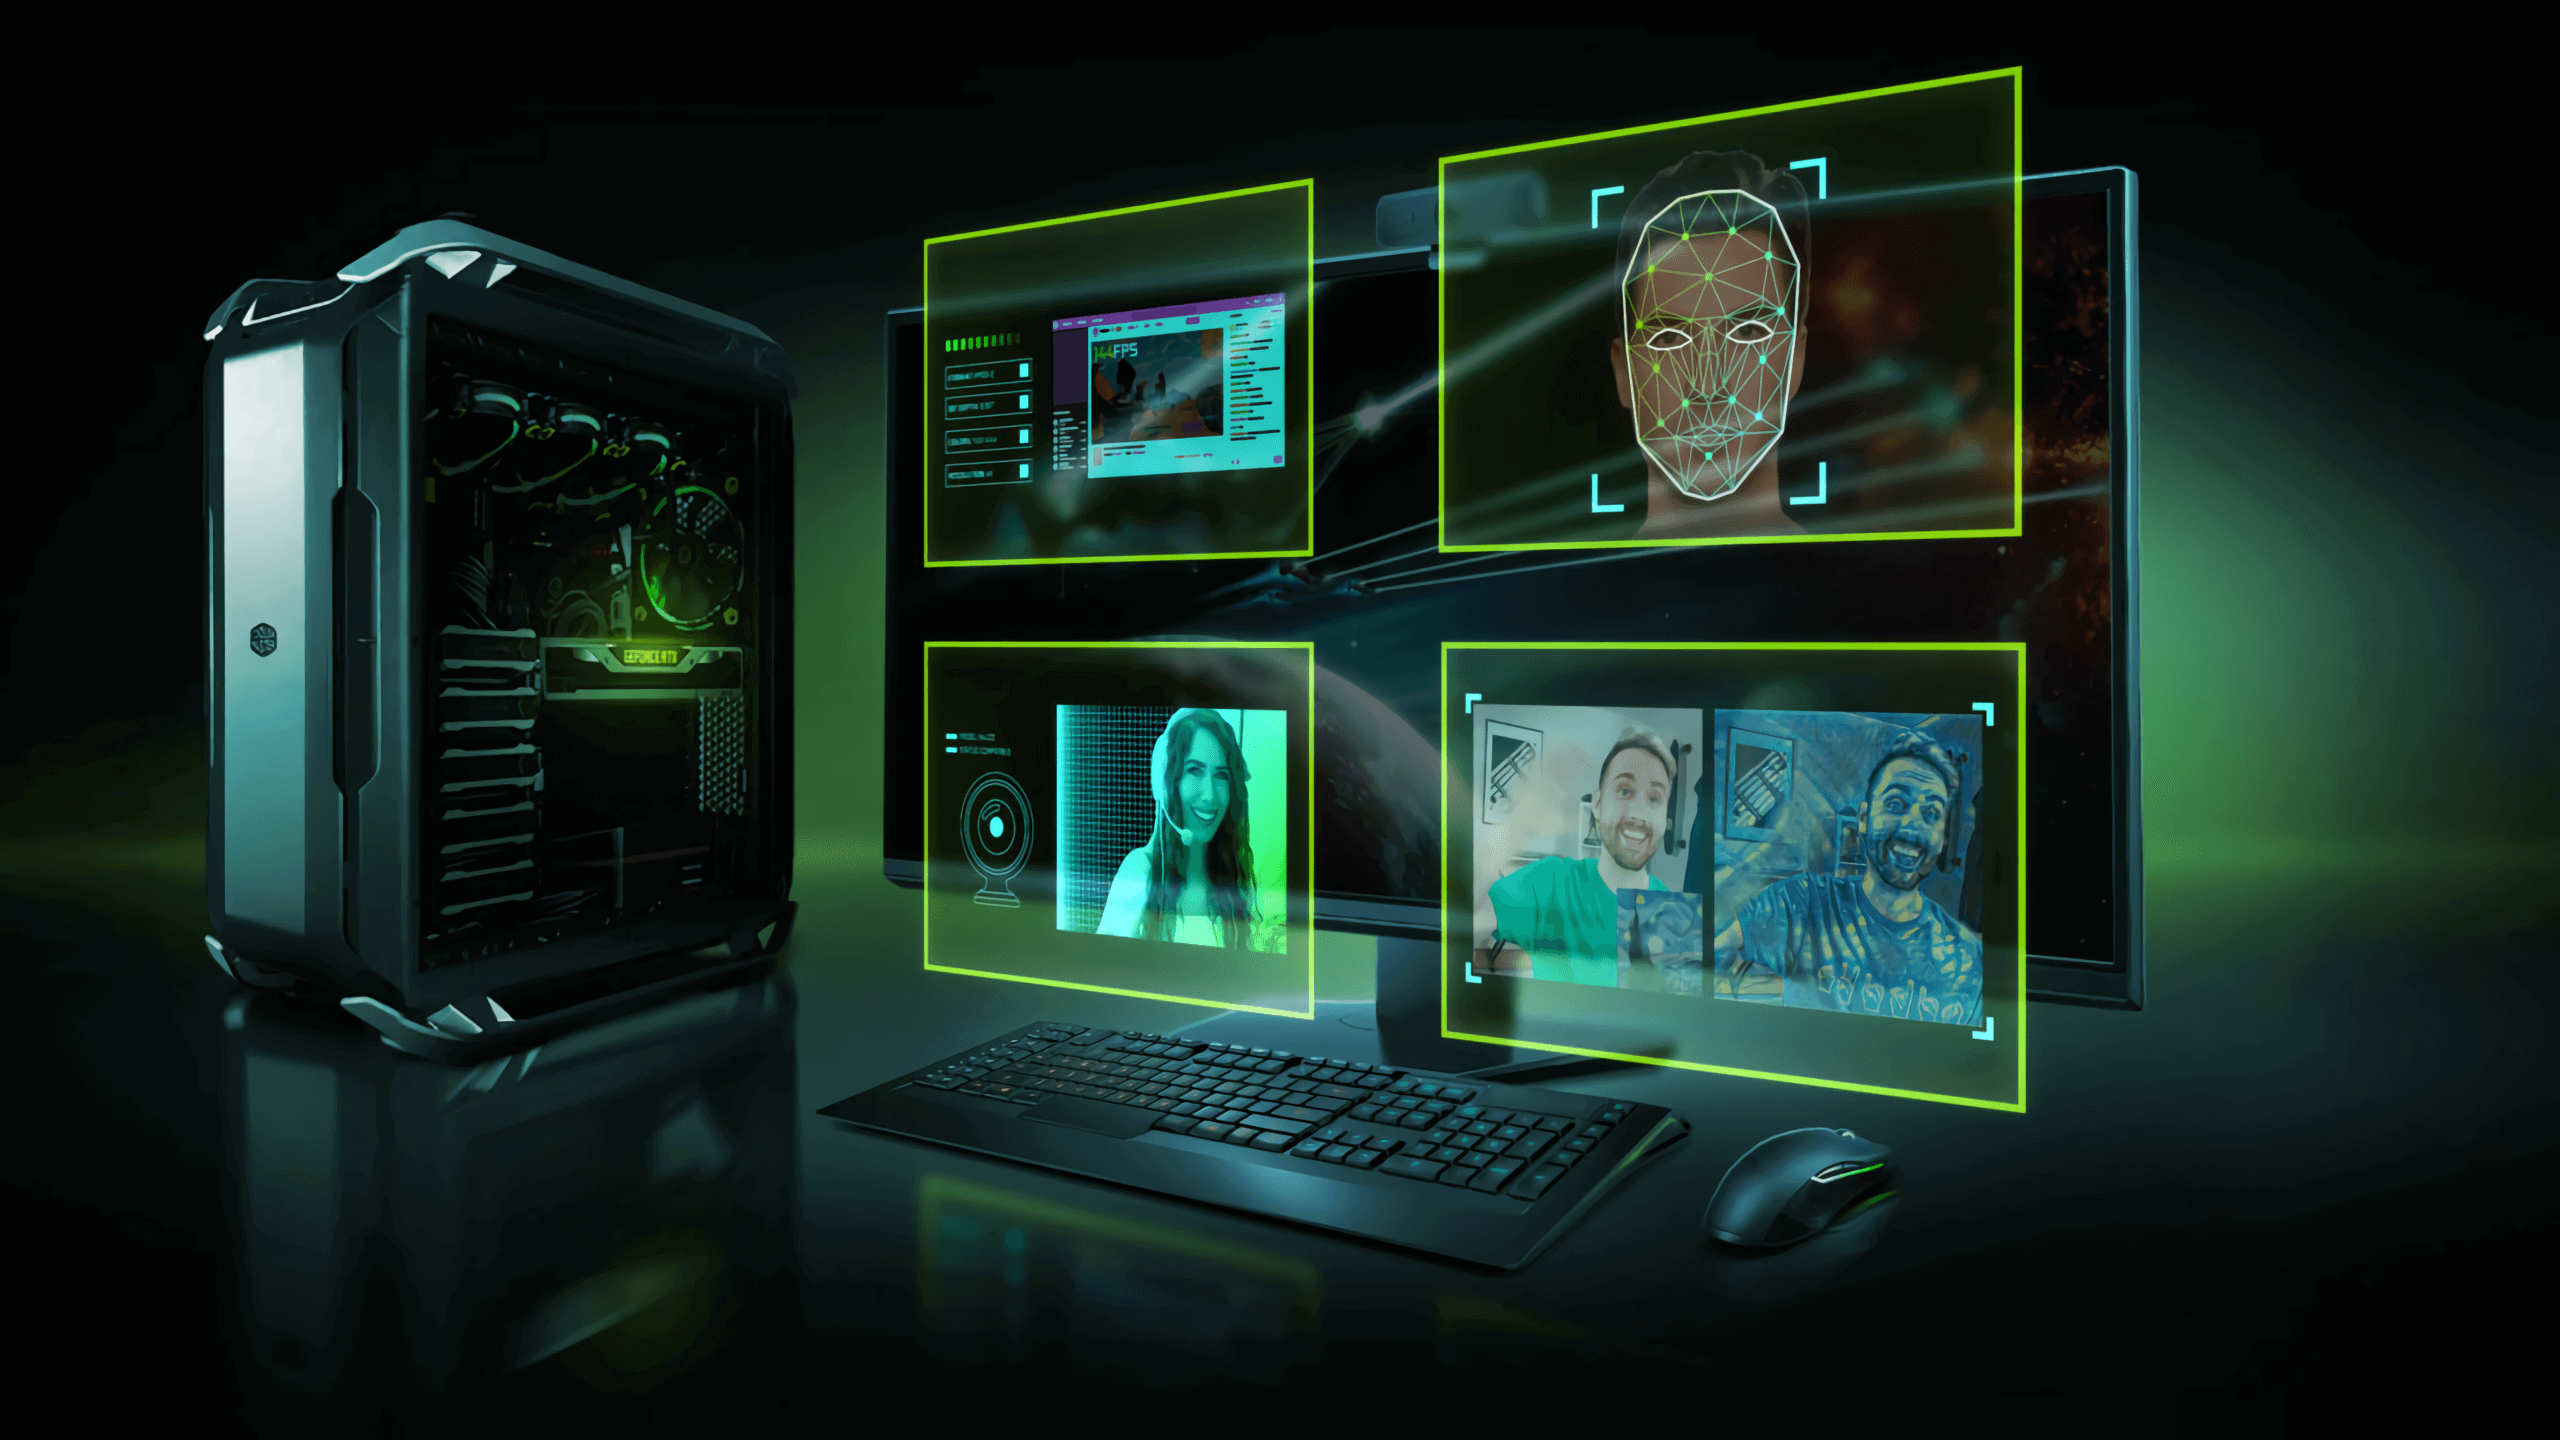 Nvidia announces an AI-driven green screen for streamers